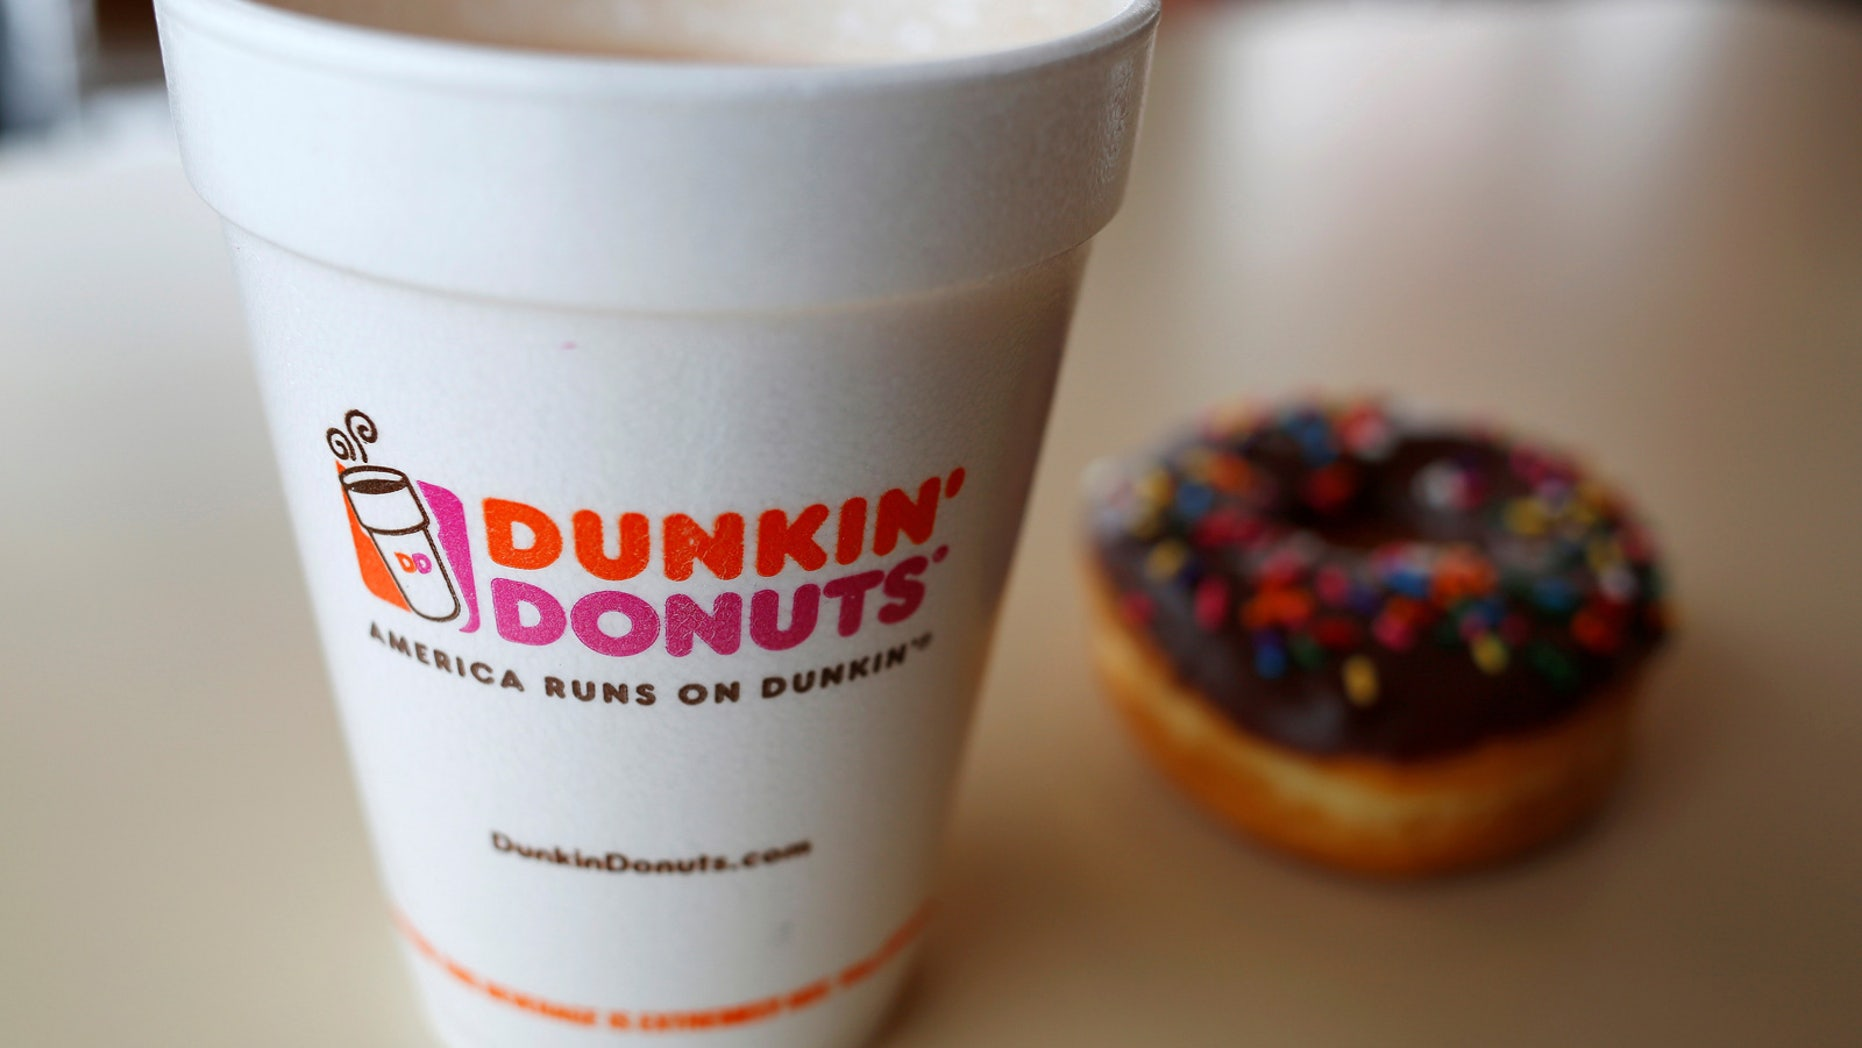 Jan Polanik was sick of Dunkin' Donuts putting butter substitutes on his bagels.